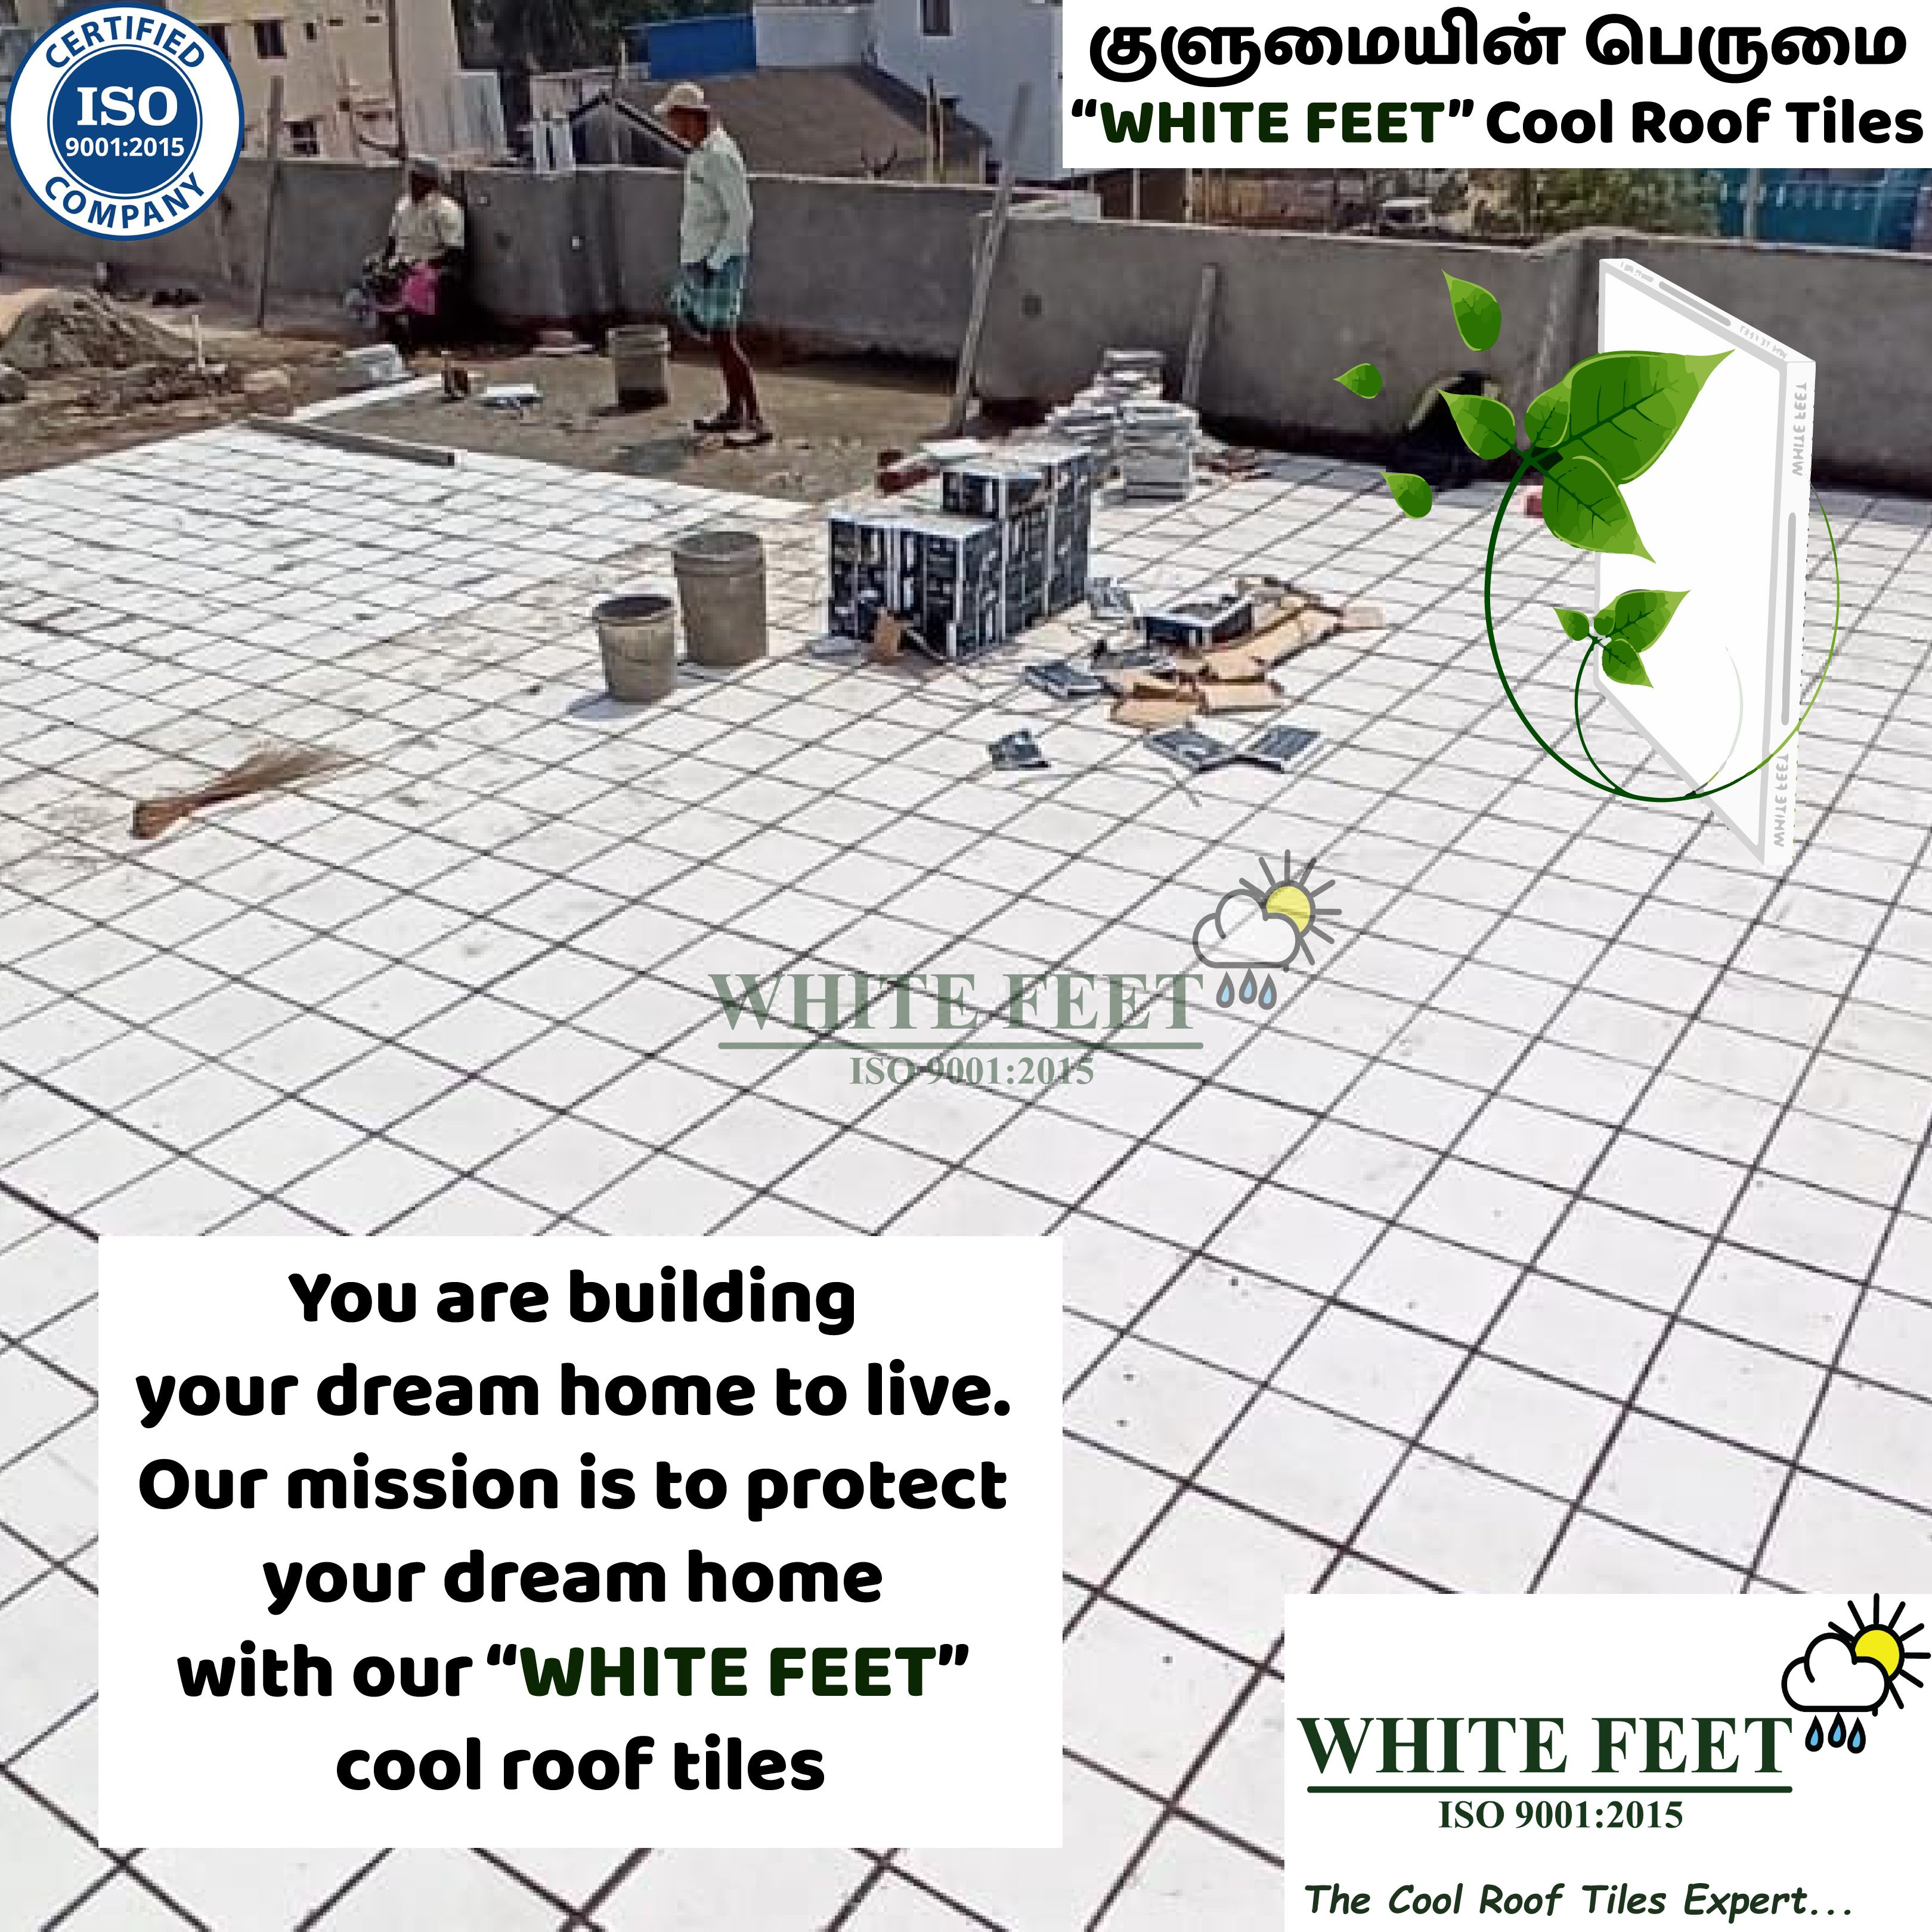 White Feet Cool Roof Tiles In 2020 Cool Roof Roof Tiles Roof Problems